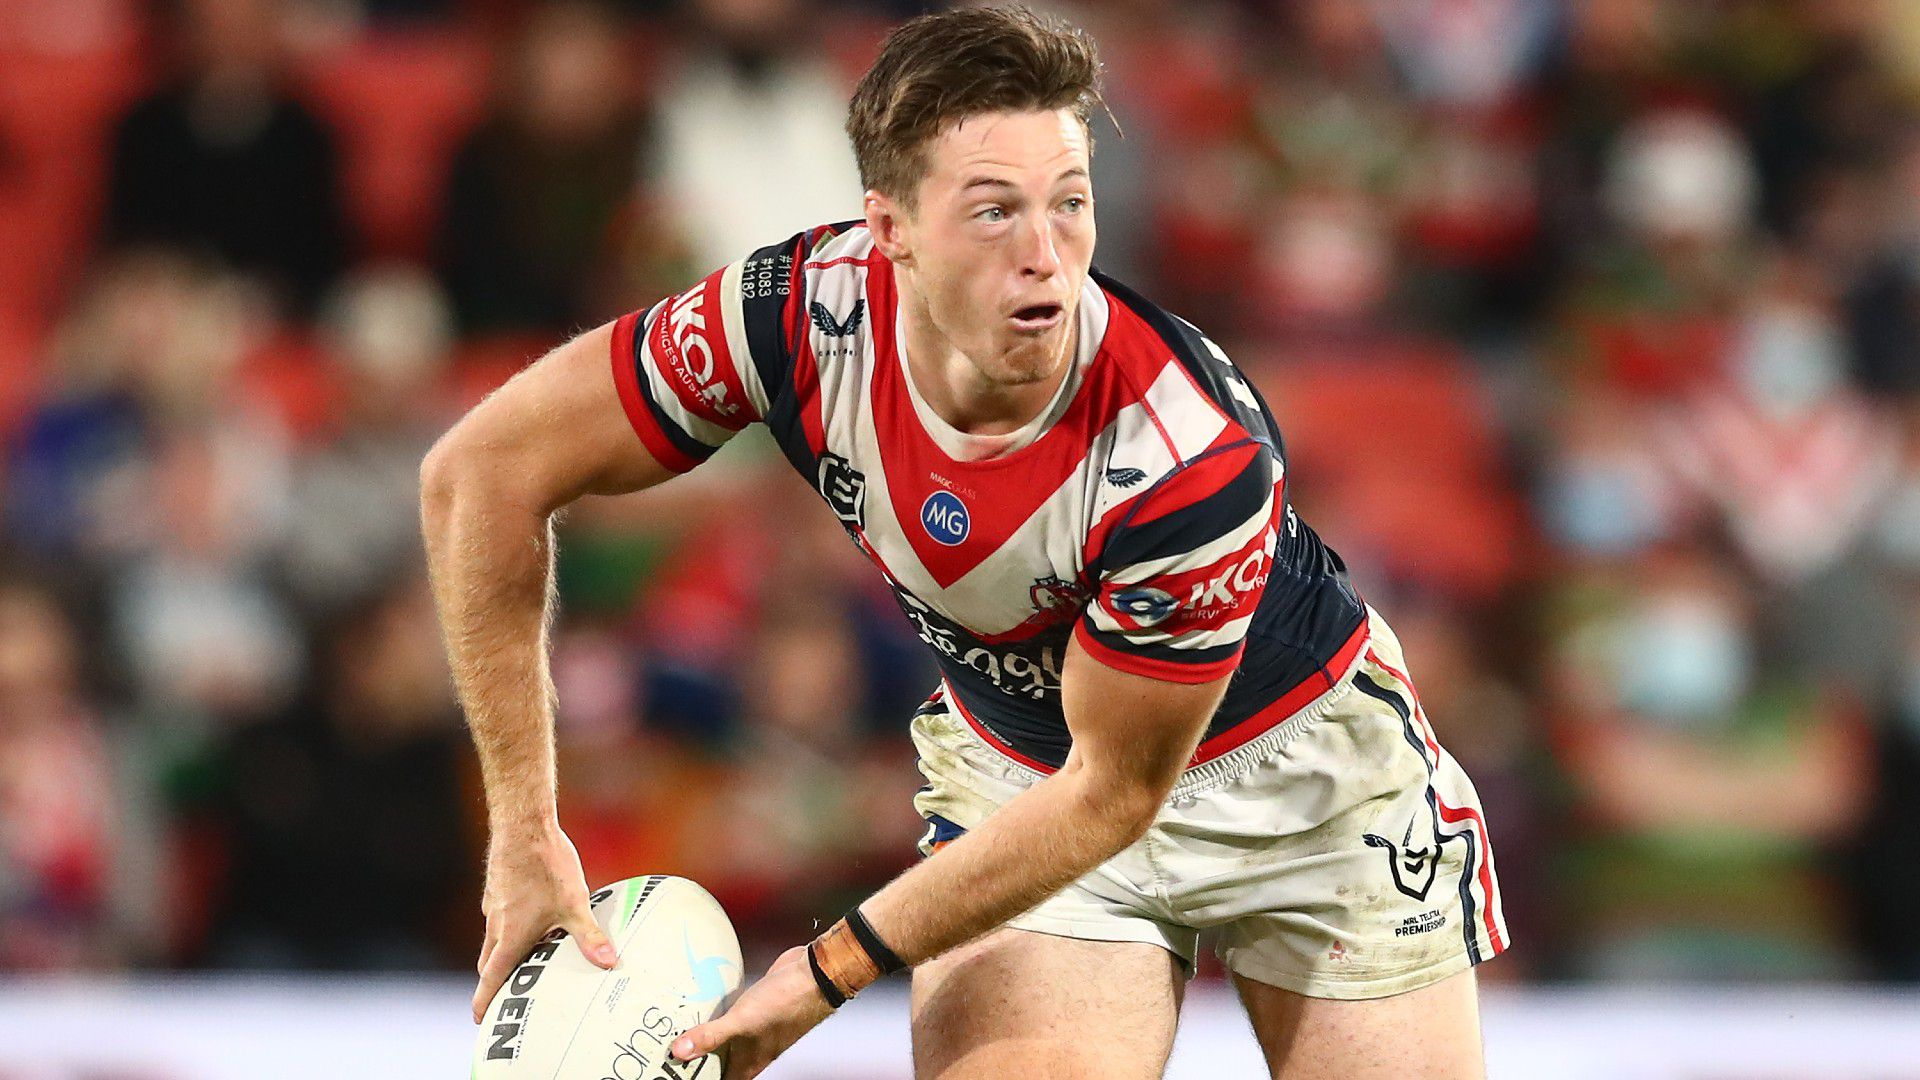 EXCLUSIVE: Phil Gould slams judiciary over Roosters' hooker Sam Verrills' two-match ban